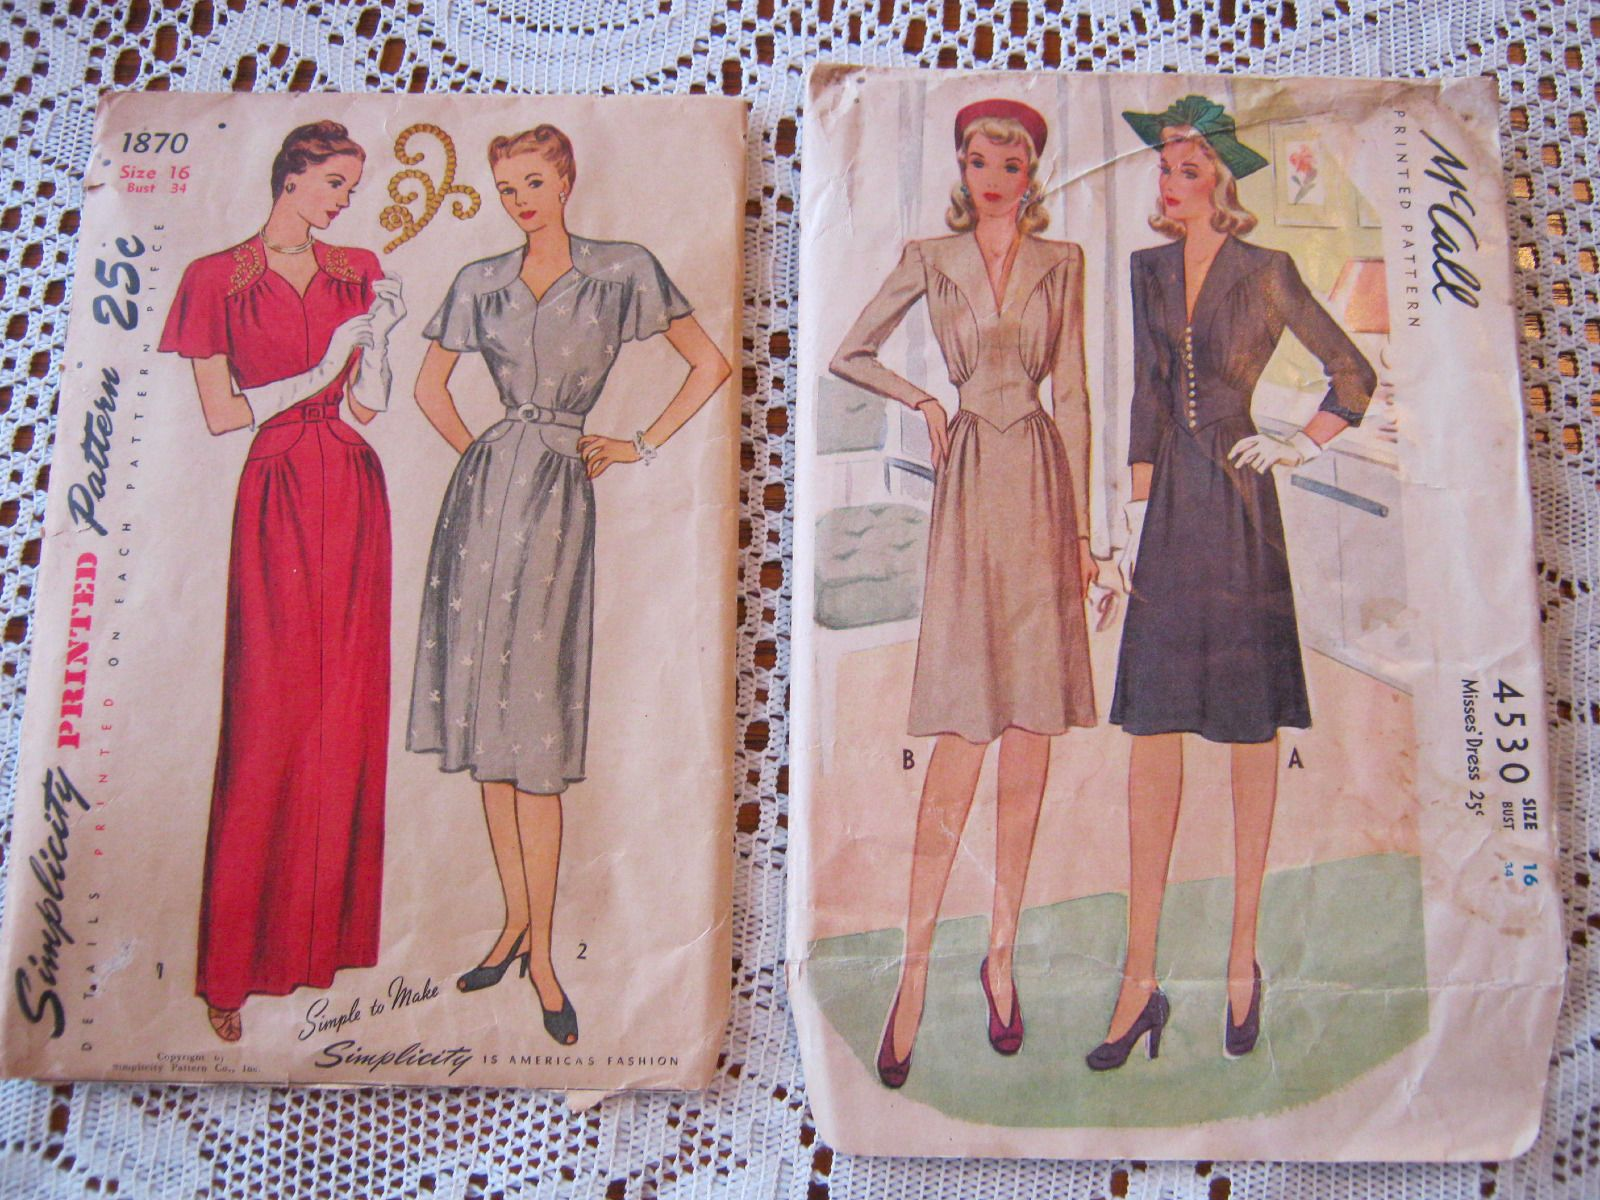 Lot of 11 Vintage Antique Ladies Dress Jacket Skirt Coat Patterns Size 34 36 | eBay